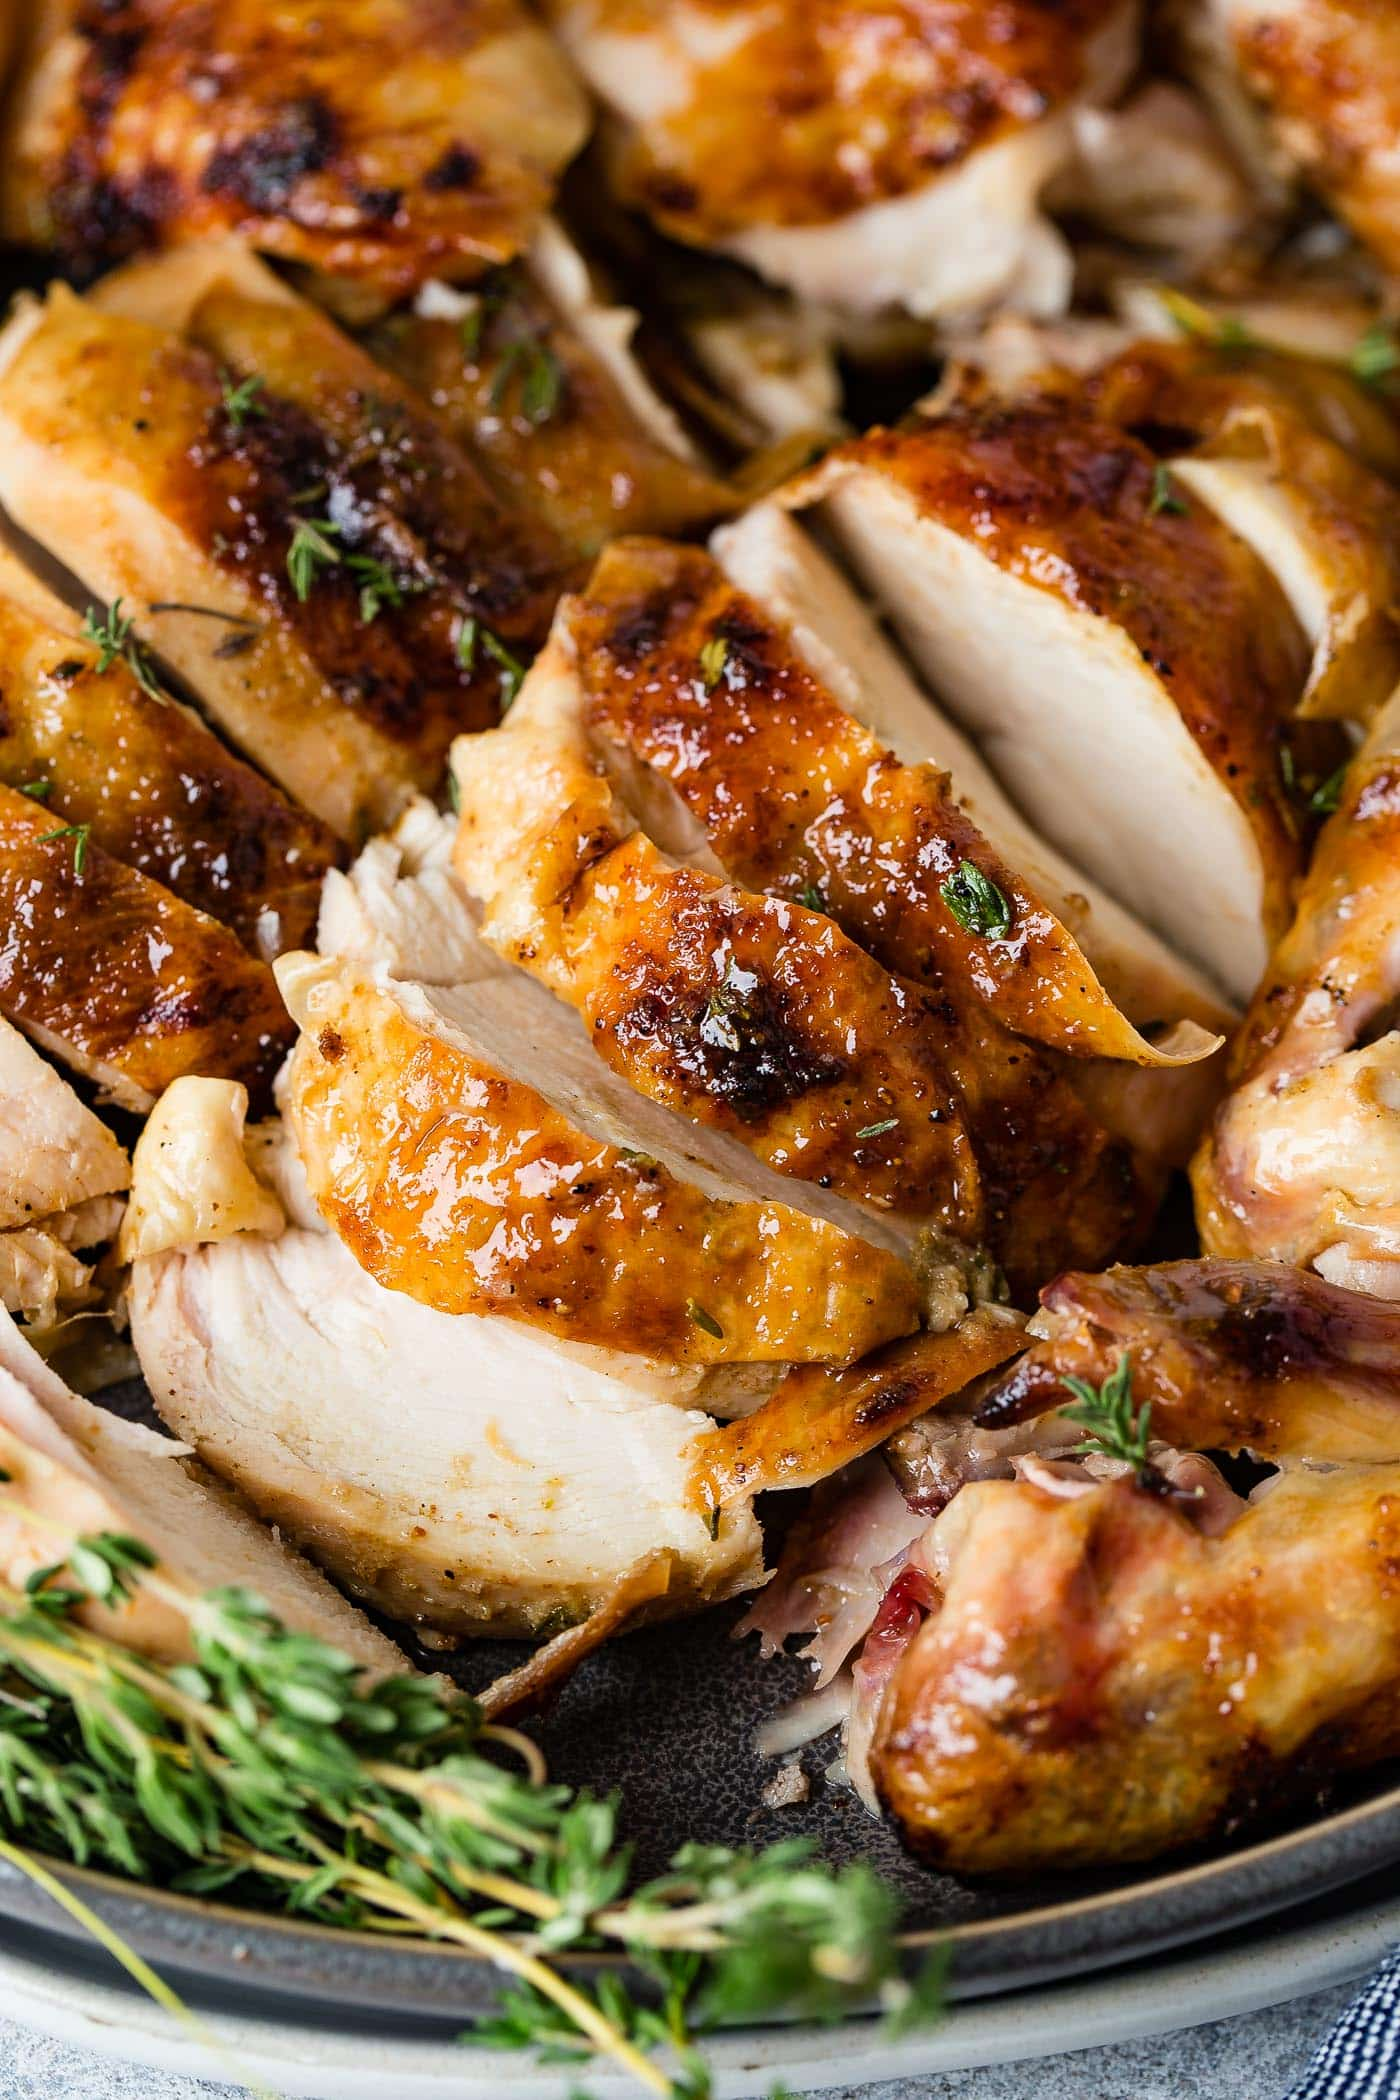 A sliced smoked chicken, with sprigs of fresh thyme next to the slices of chicken.